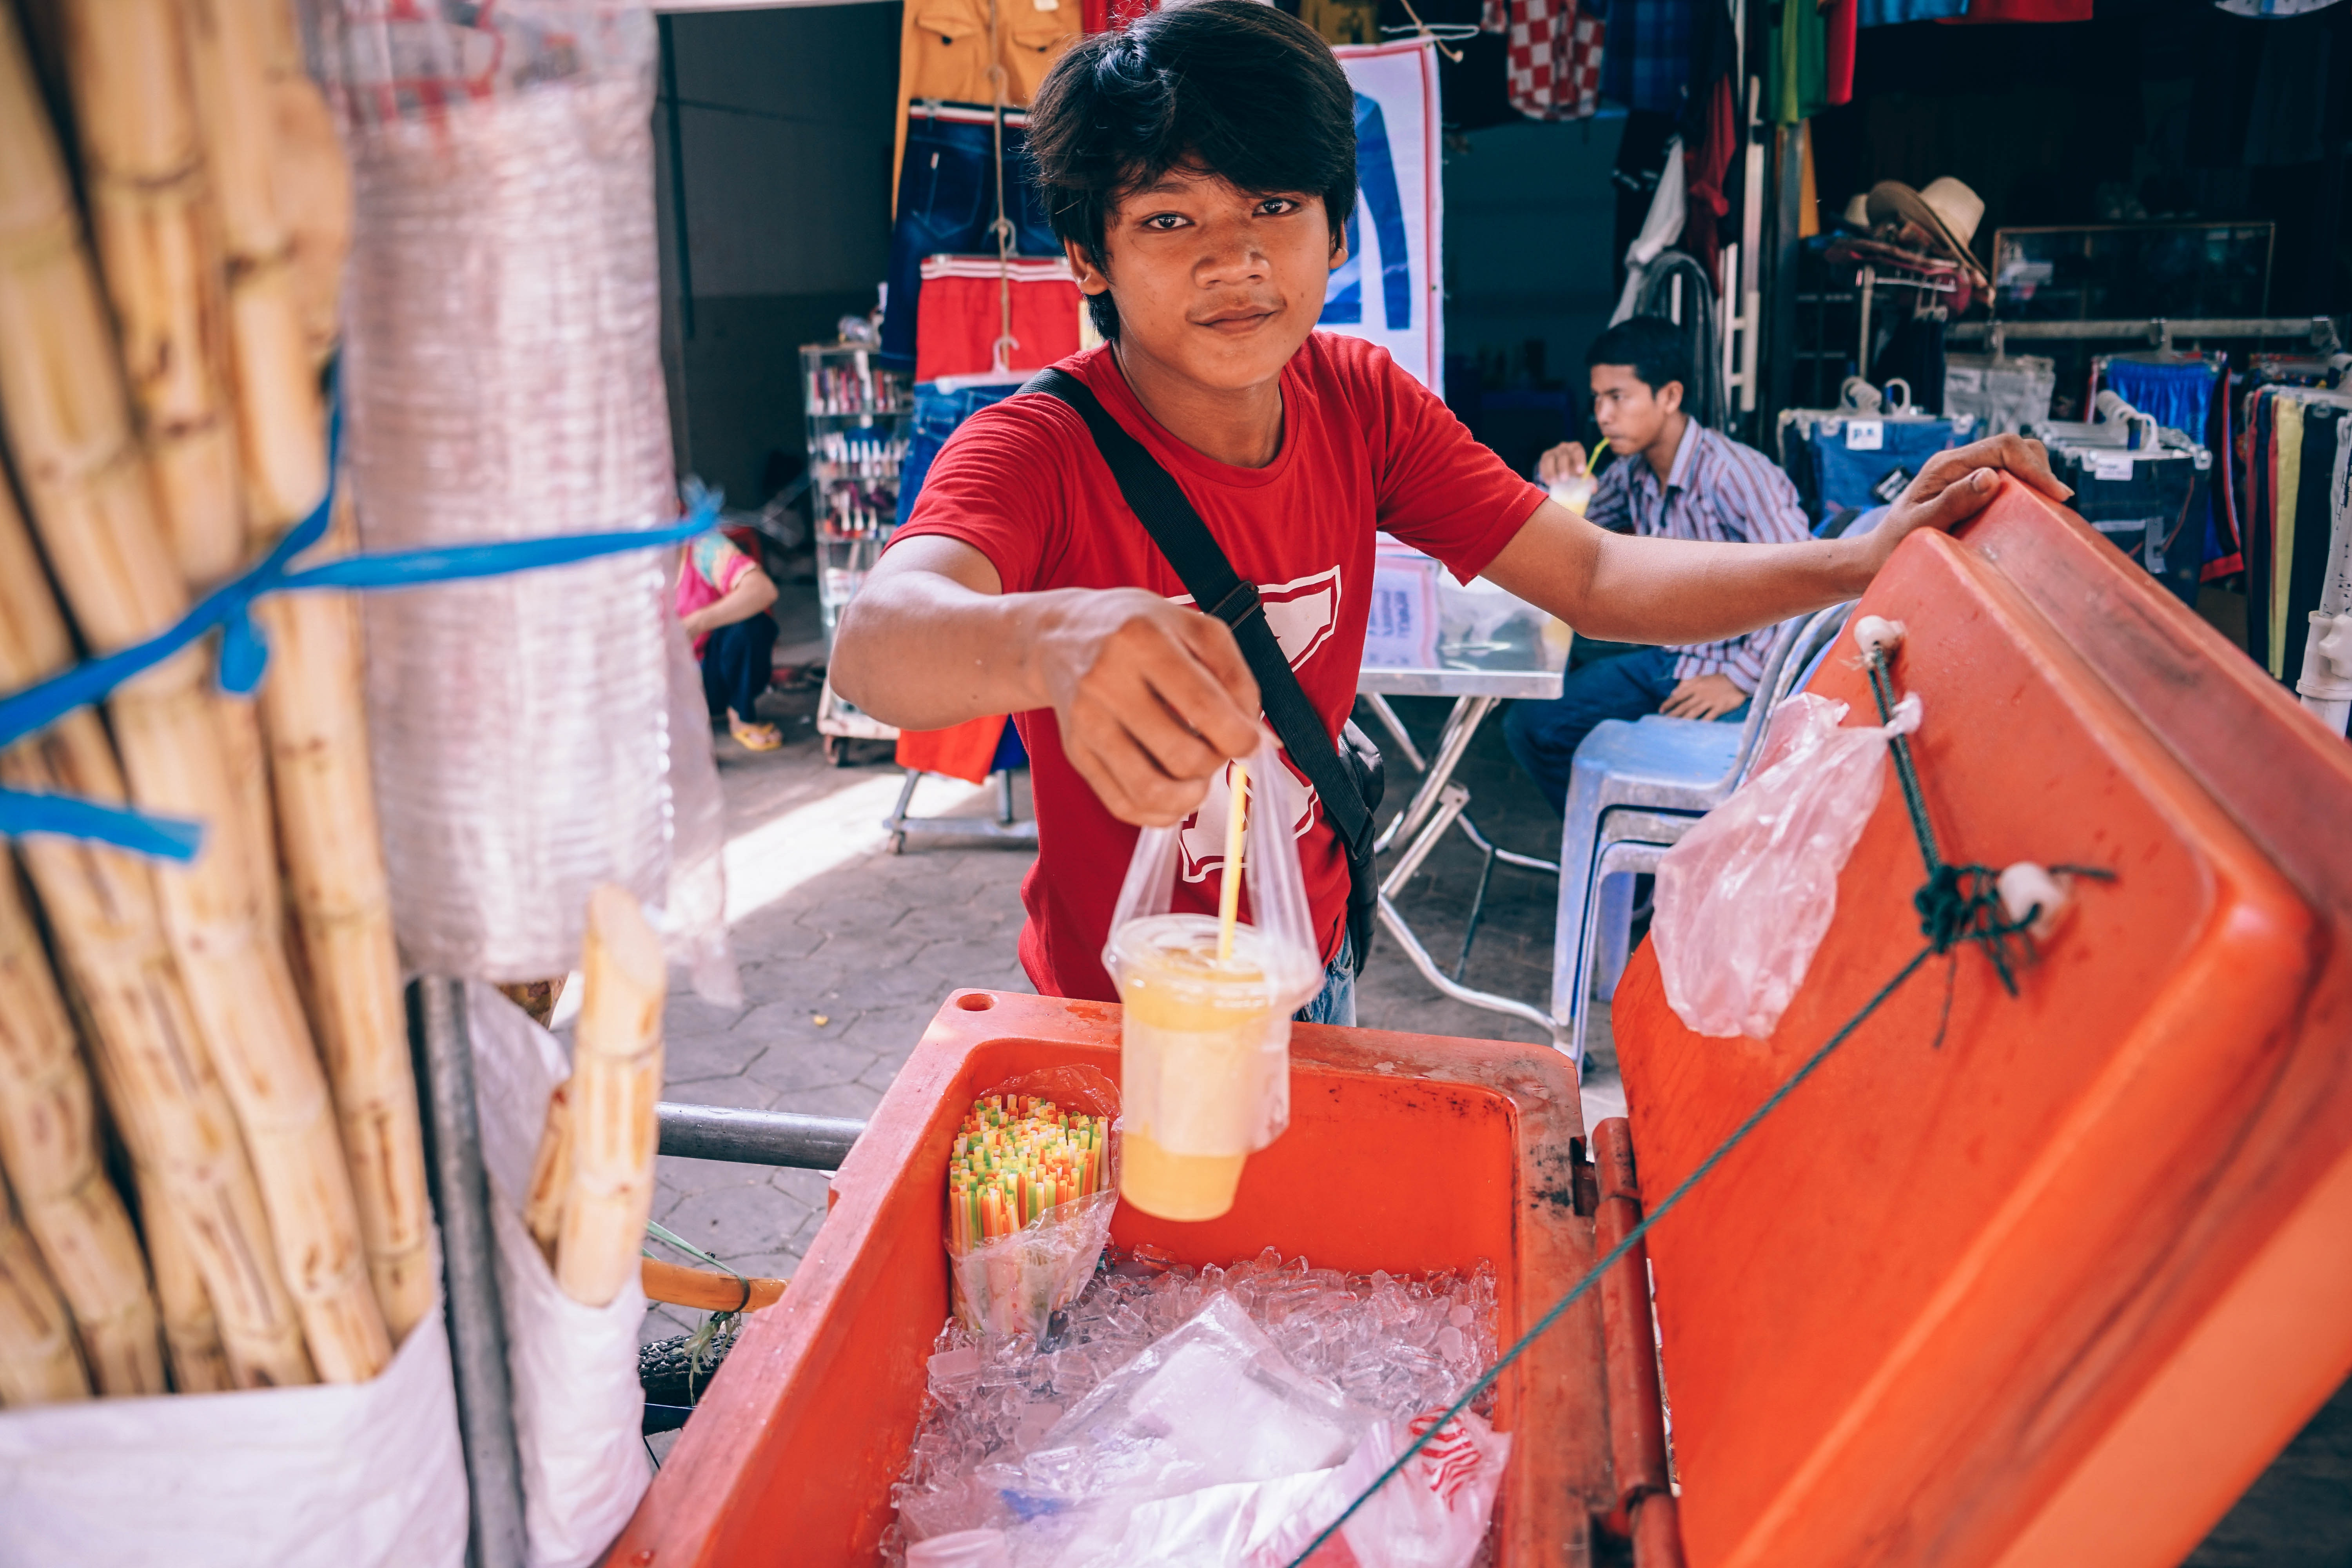 Man Holding Plastic Cup, Asia, Outdoors, Urban, Street, HQ Photo